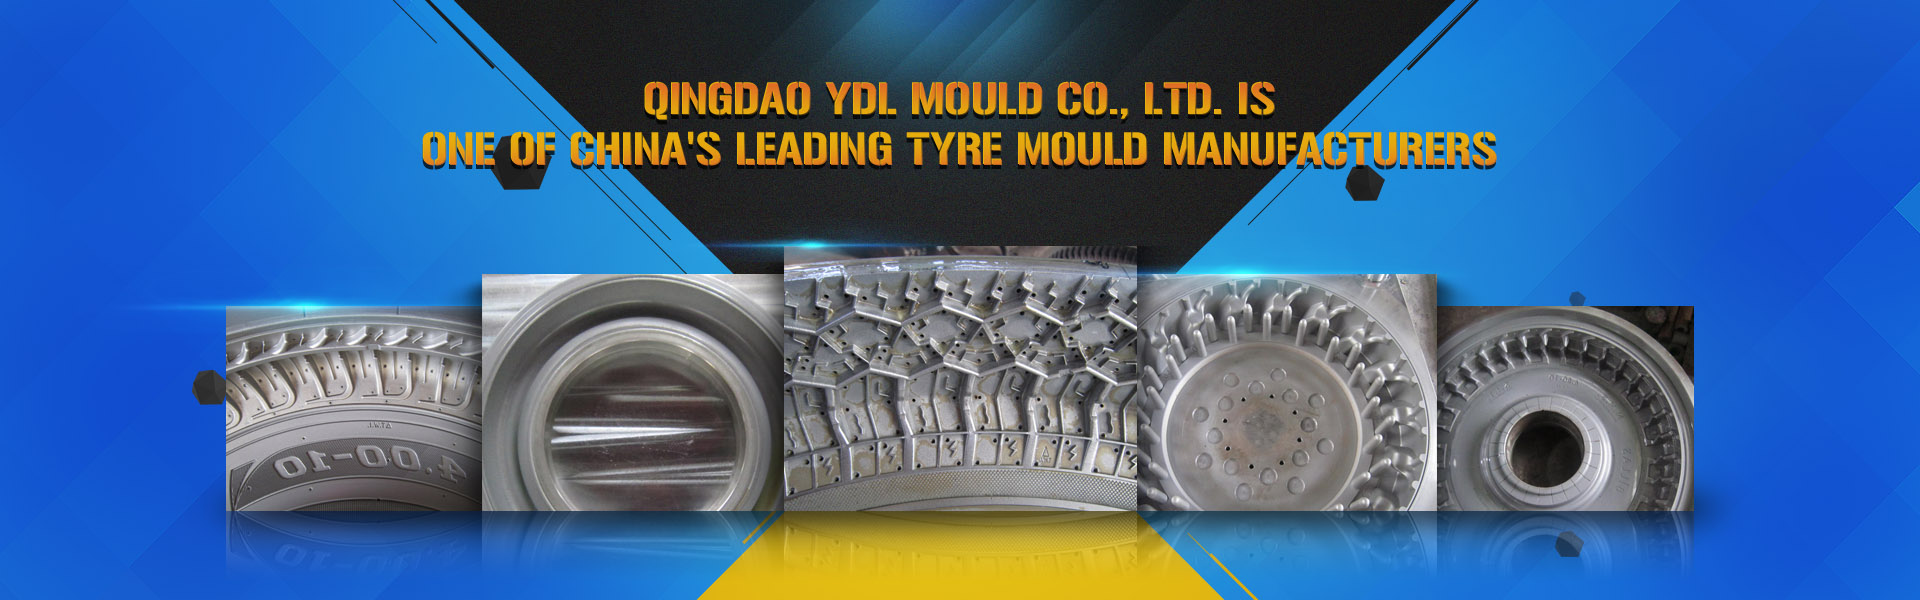 qingdao yingdeli mould co.,ltd